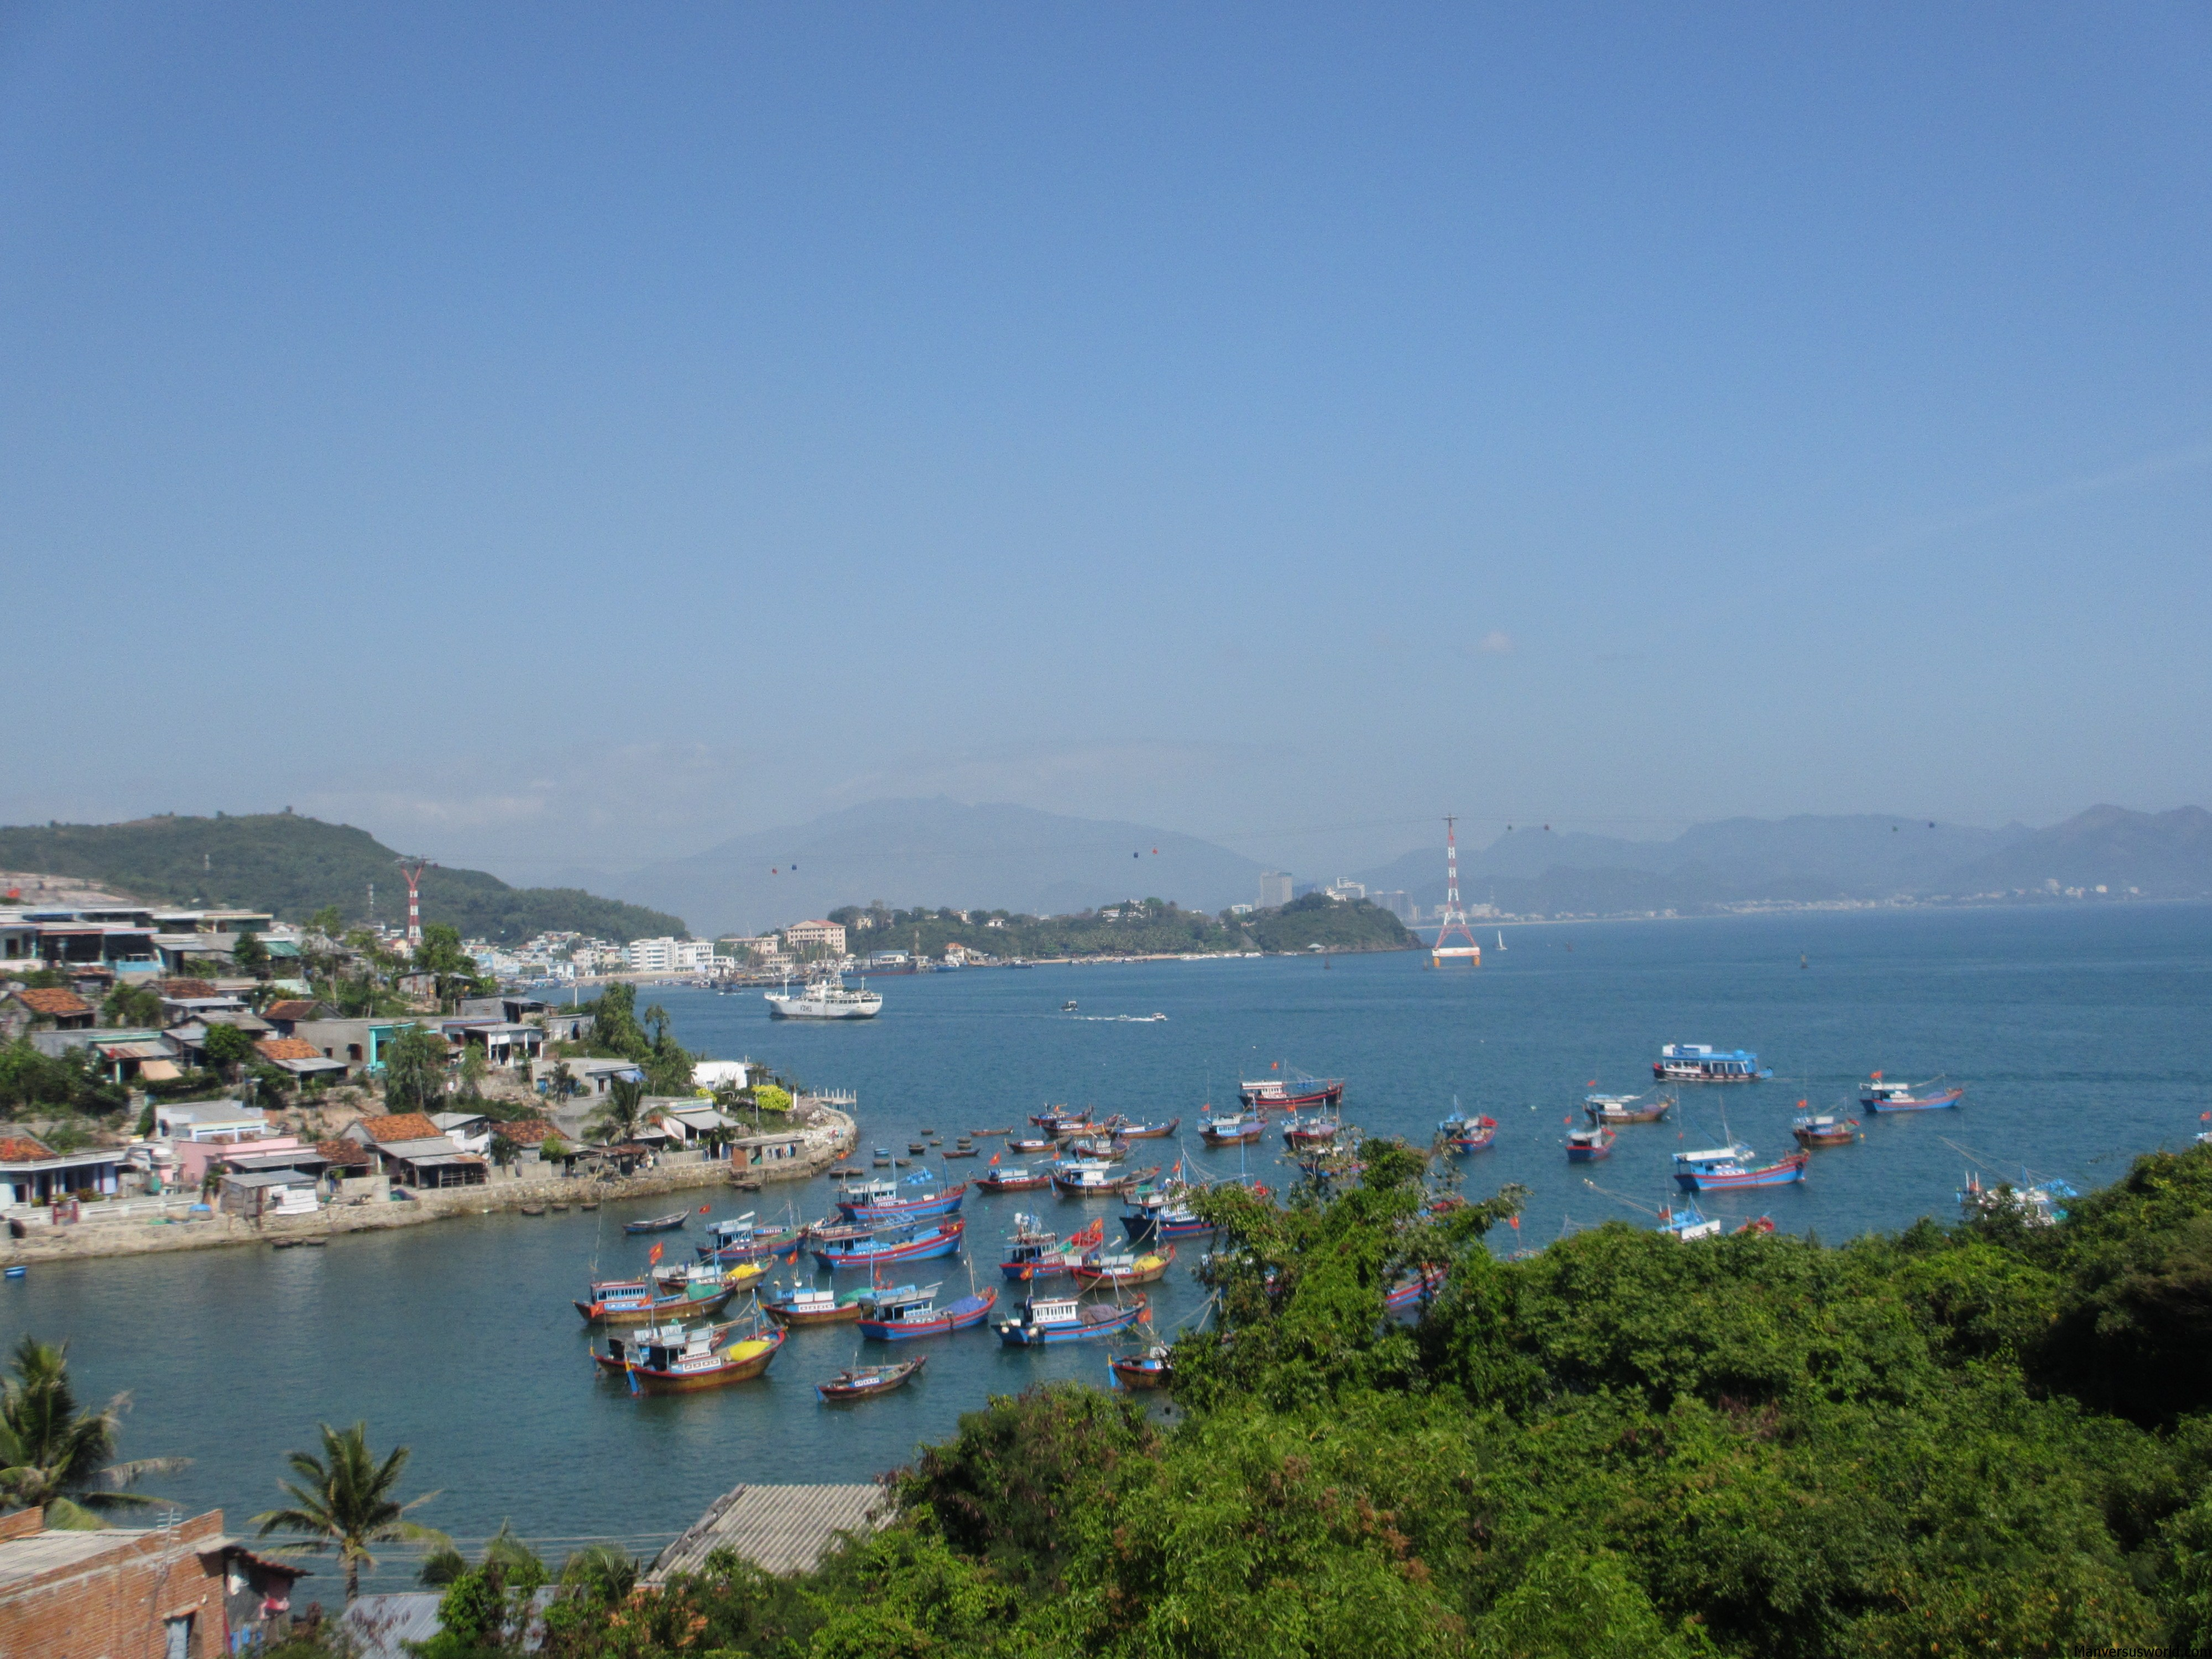 The lovely view from Tri Nguyen Aquarium